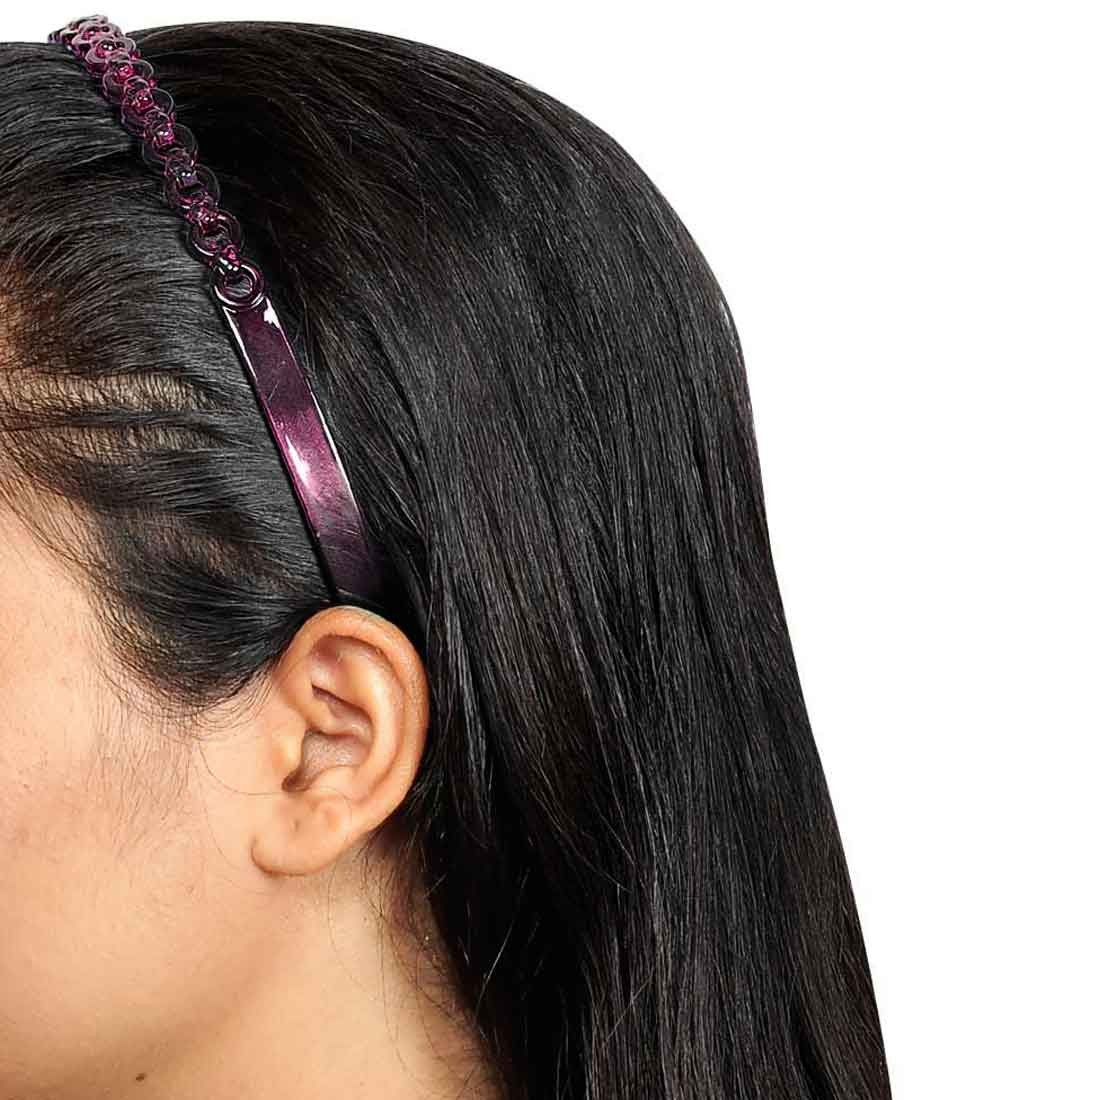 Fantastic Designer Hair Bands in Green Pink for College by Maayra